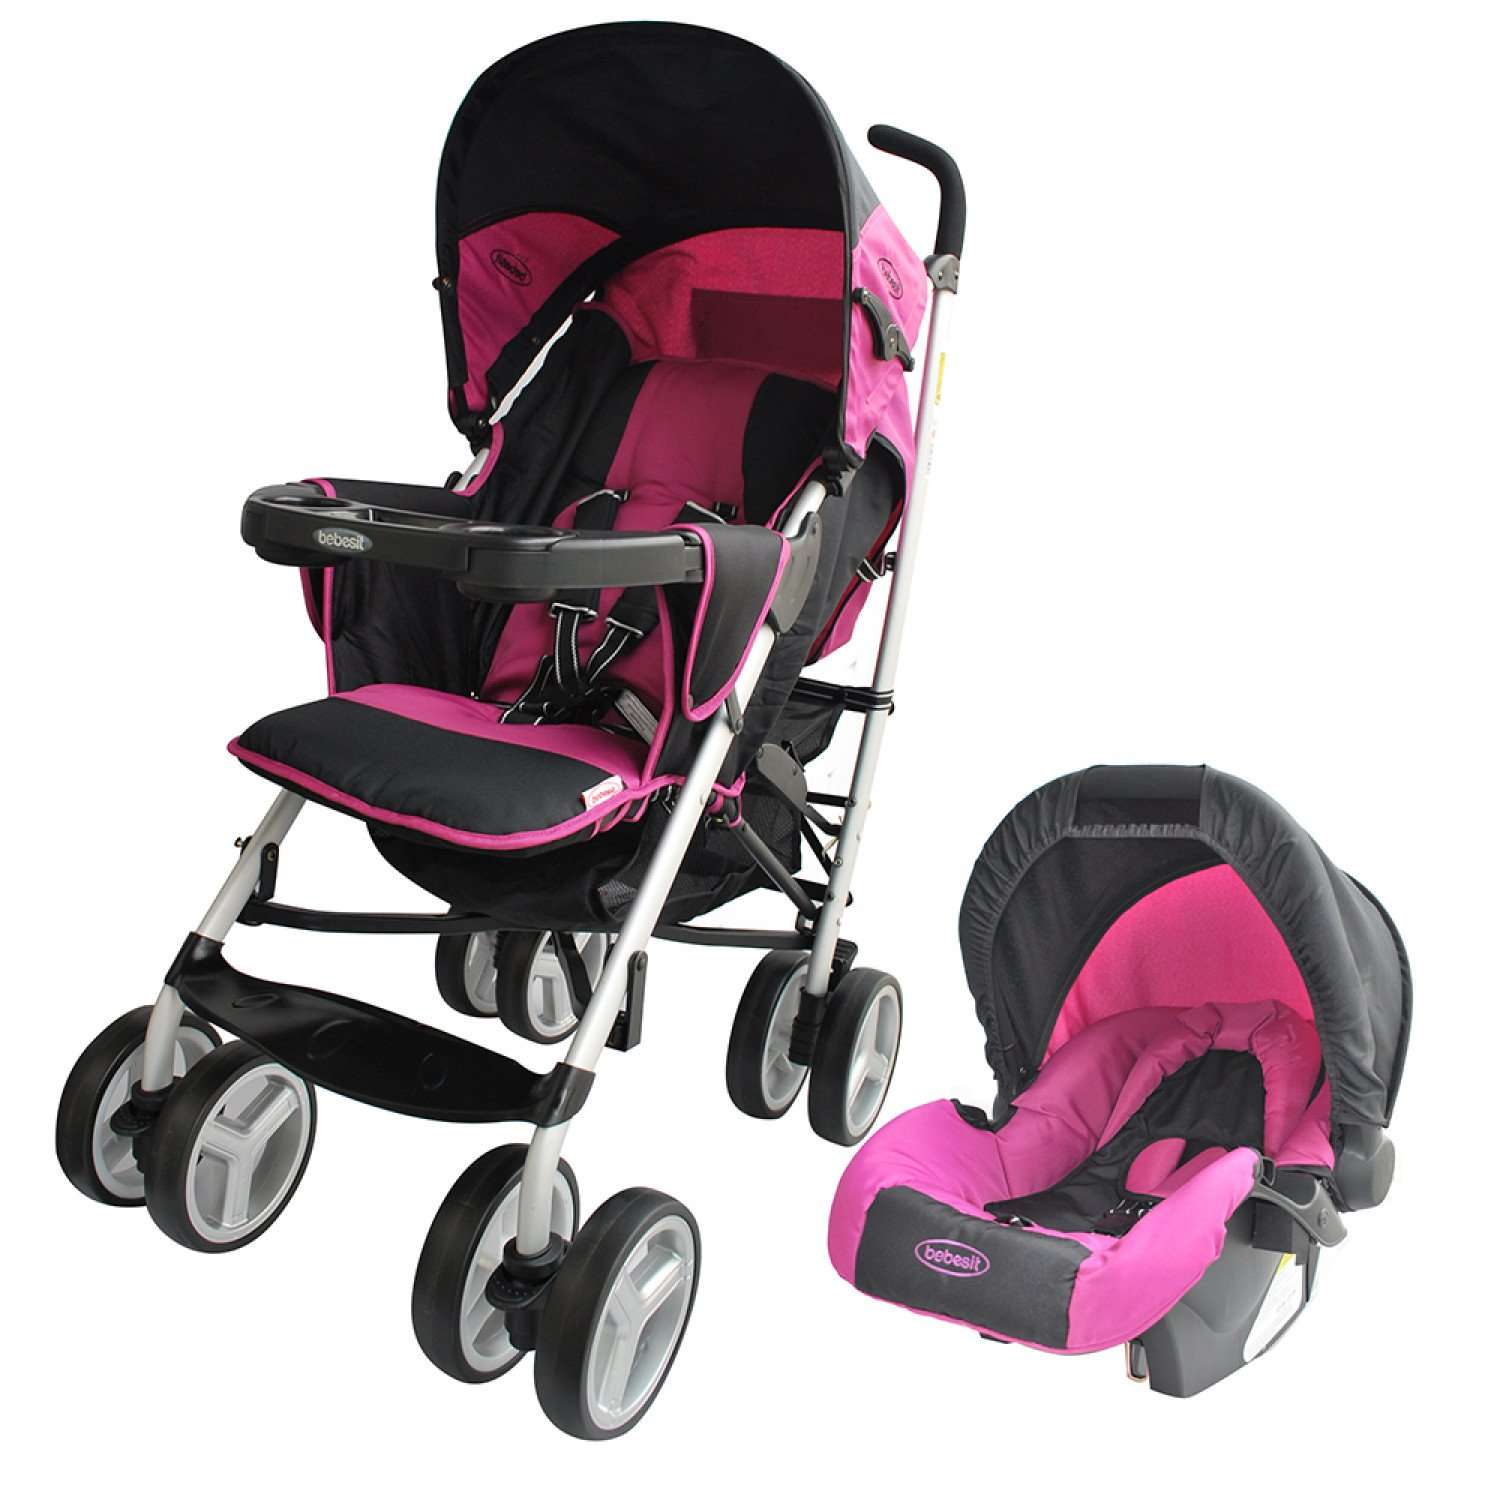 Coche Travel System Bebesit Cross, Coches, CPbebés